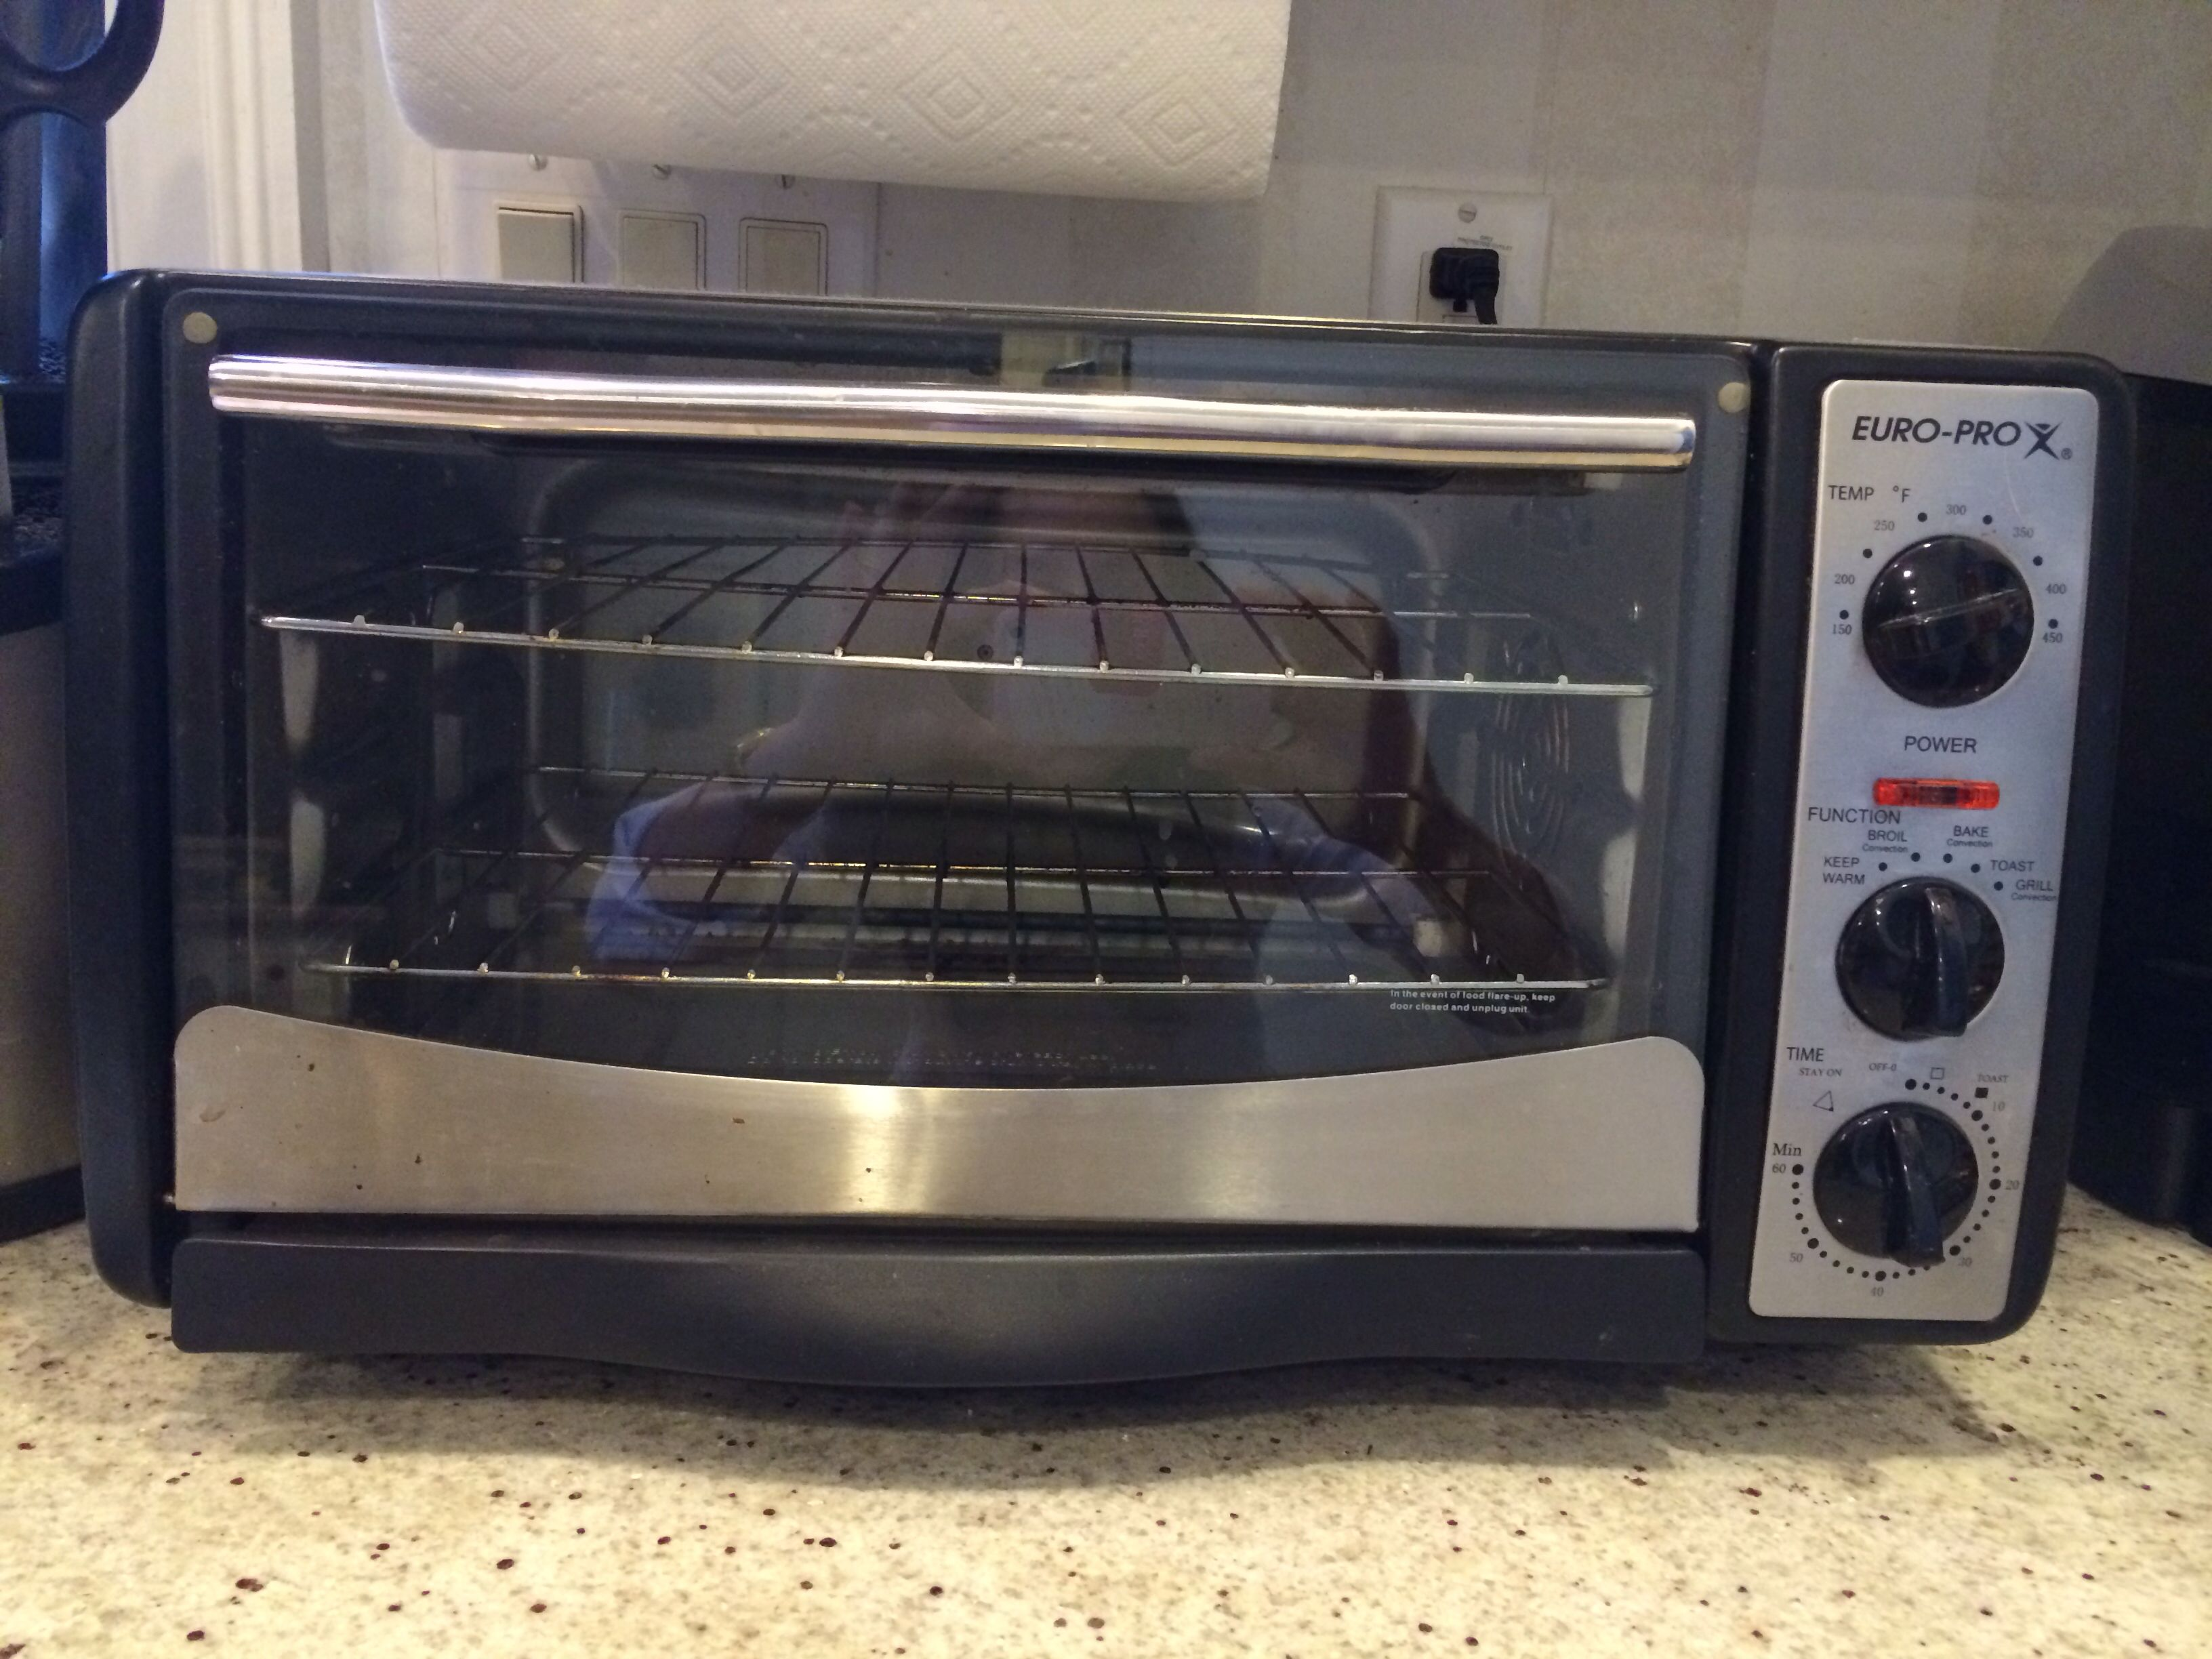 Euro Pro My Favorite Small Toaster Oven Ever Small